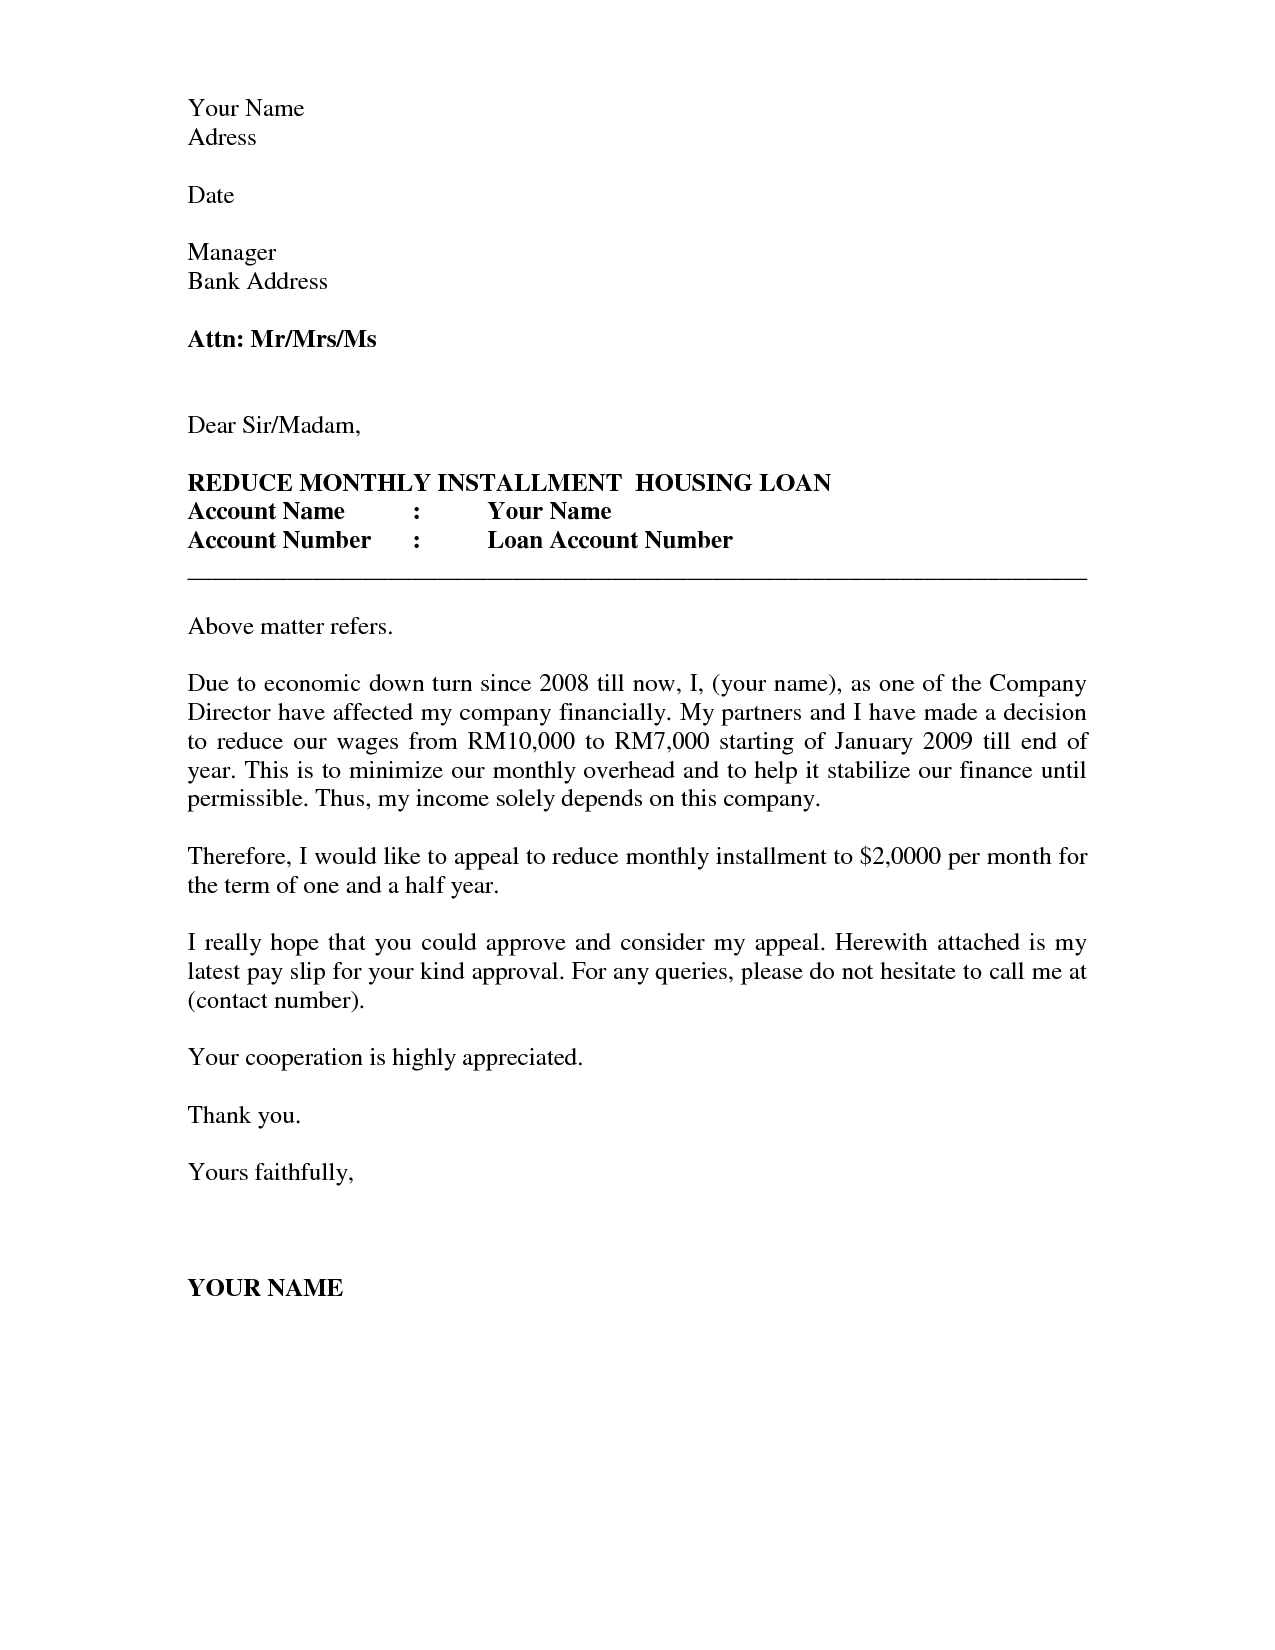 Business appeal letter a letter of appeal should be written in a business appeal letter a letter of appeal should be written in a professional business letter spiritdancerdesigns Image collections